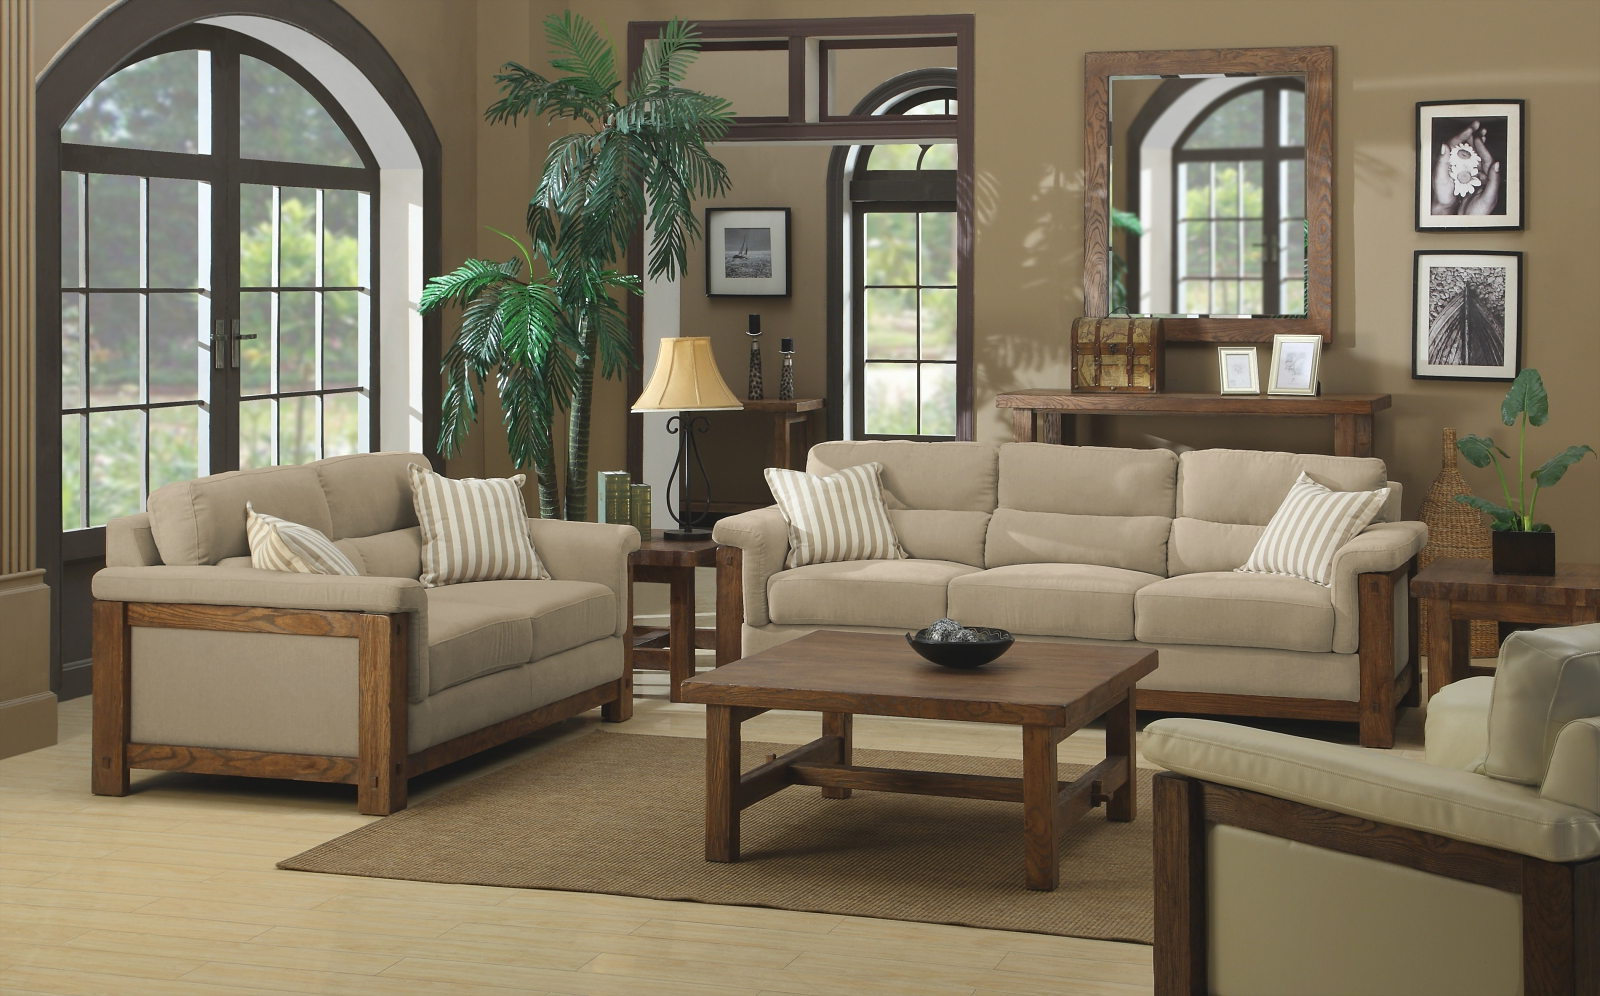 Beige Living Room Country